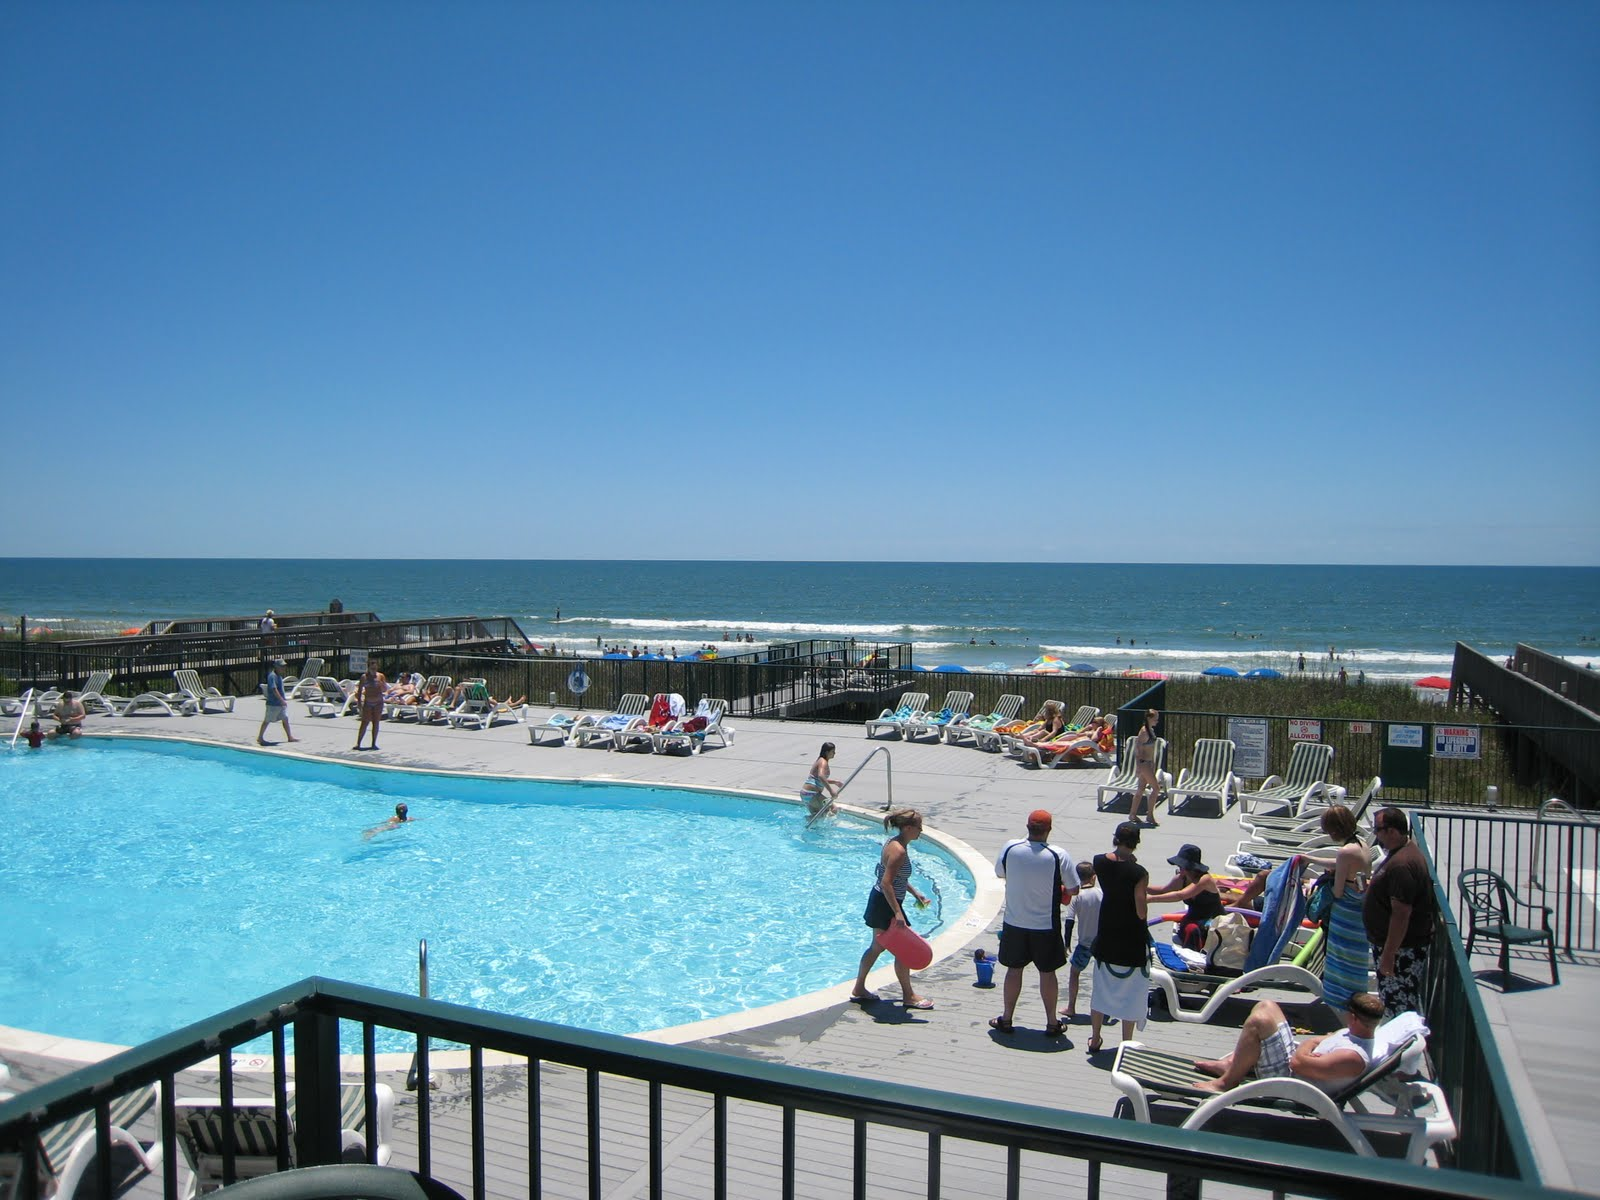 Myrtle Beach Koa Myrtle Beach South Carolina Reviews